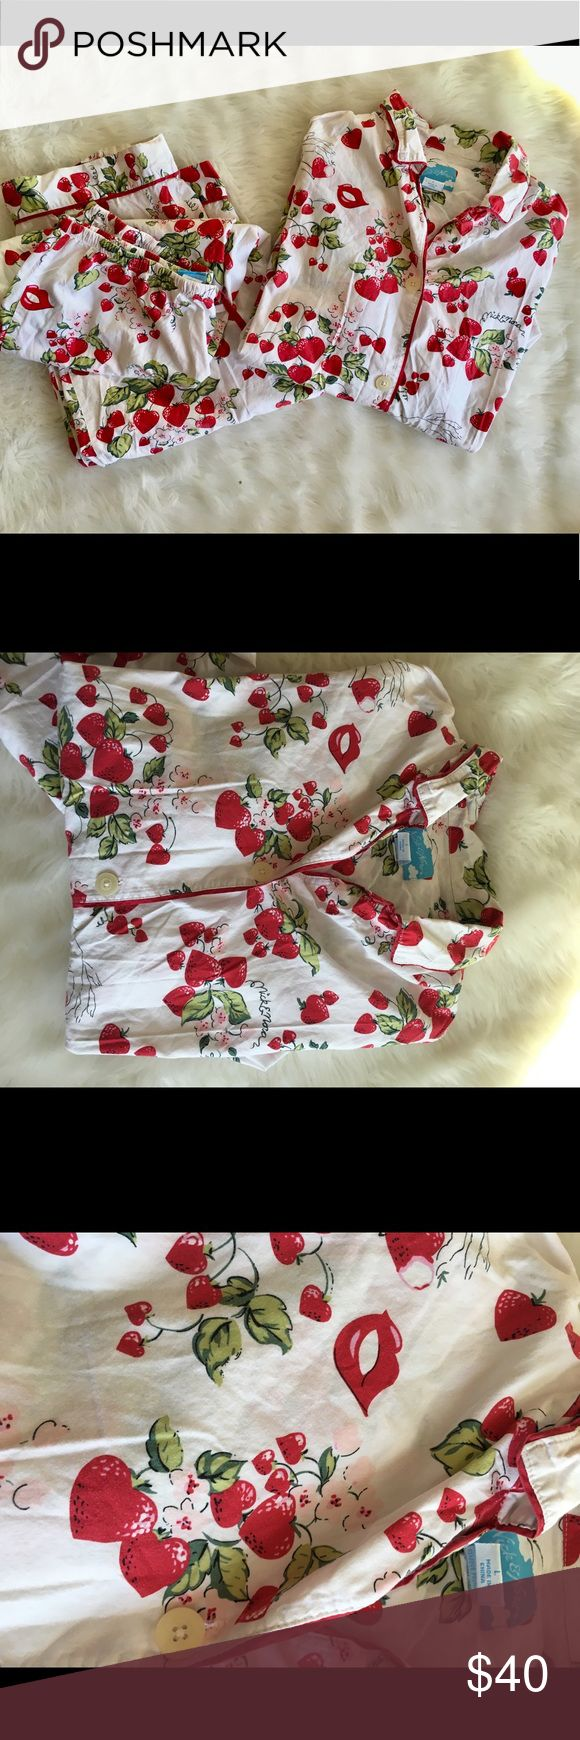 Nick & Nora Pajama Set Strawberries Hearts Lips Nick & Nora Pajama Set Strawberries Hearts Lips White Womans Large 100% cotton  Two front pockets on top Drawstring Waist  SIZE LARGE  Super clean without any flaws Nick & Nora Intimates & Sleepwear Pajamas